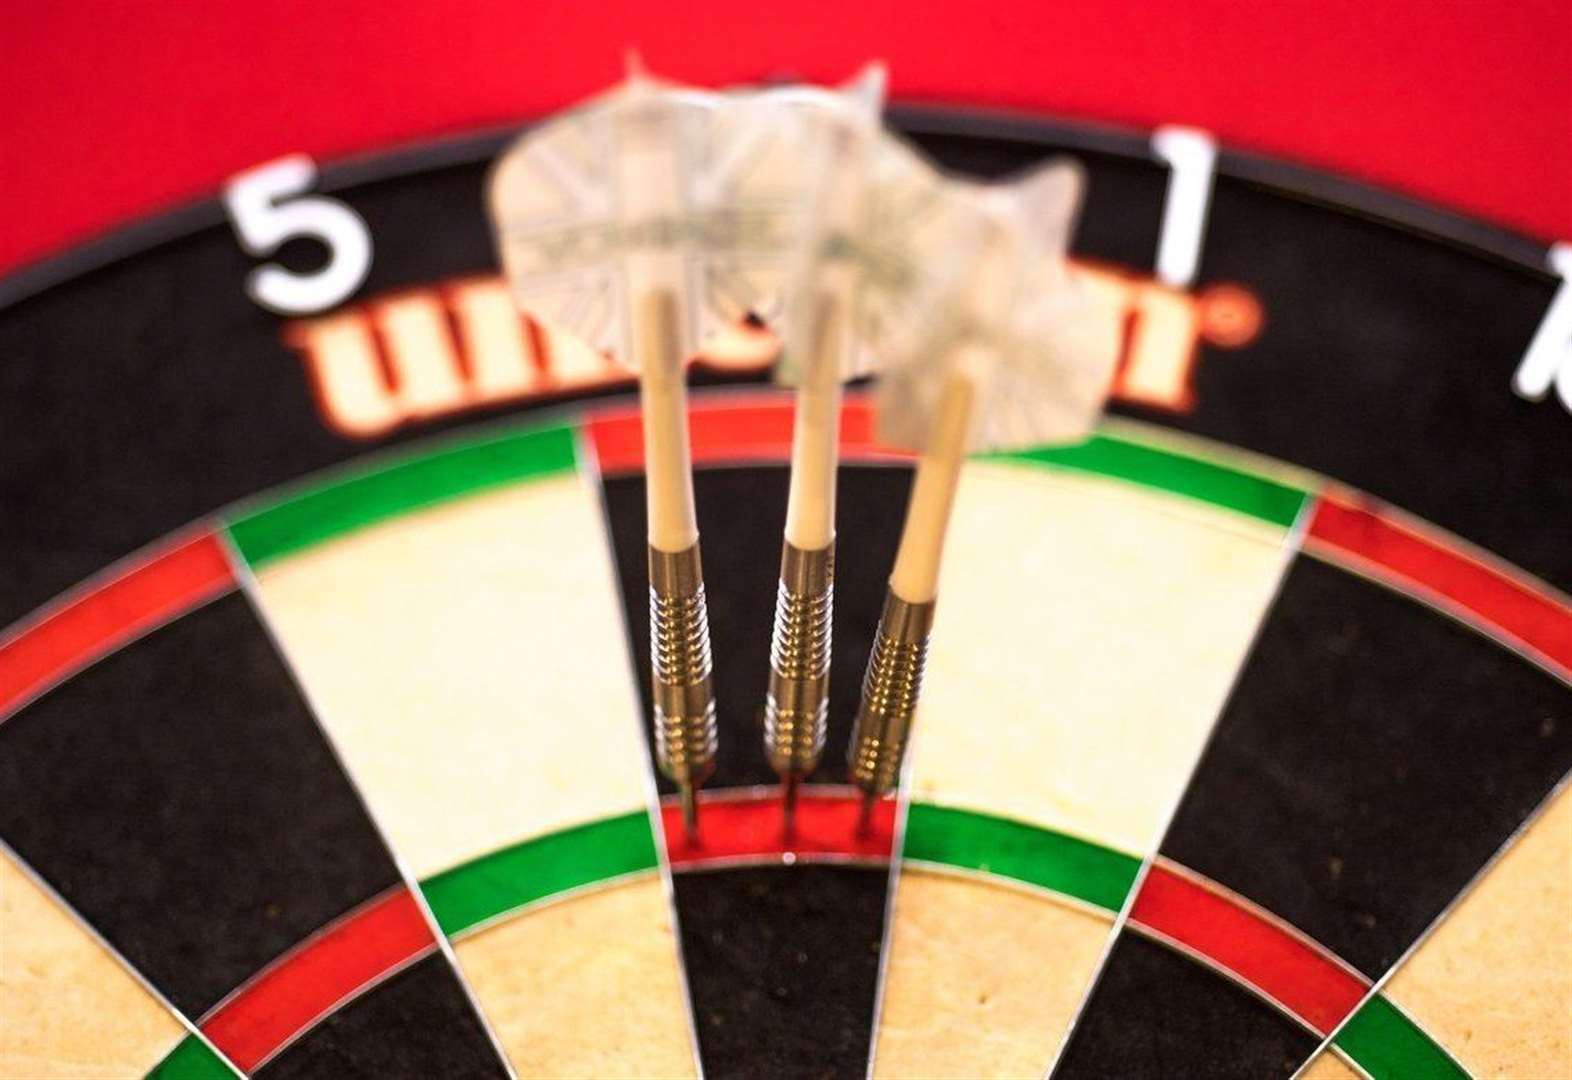 Cup games rule supreme in Inverness Darts League